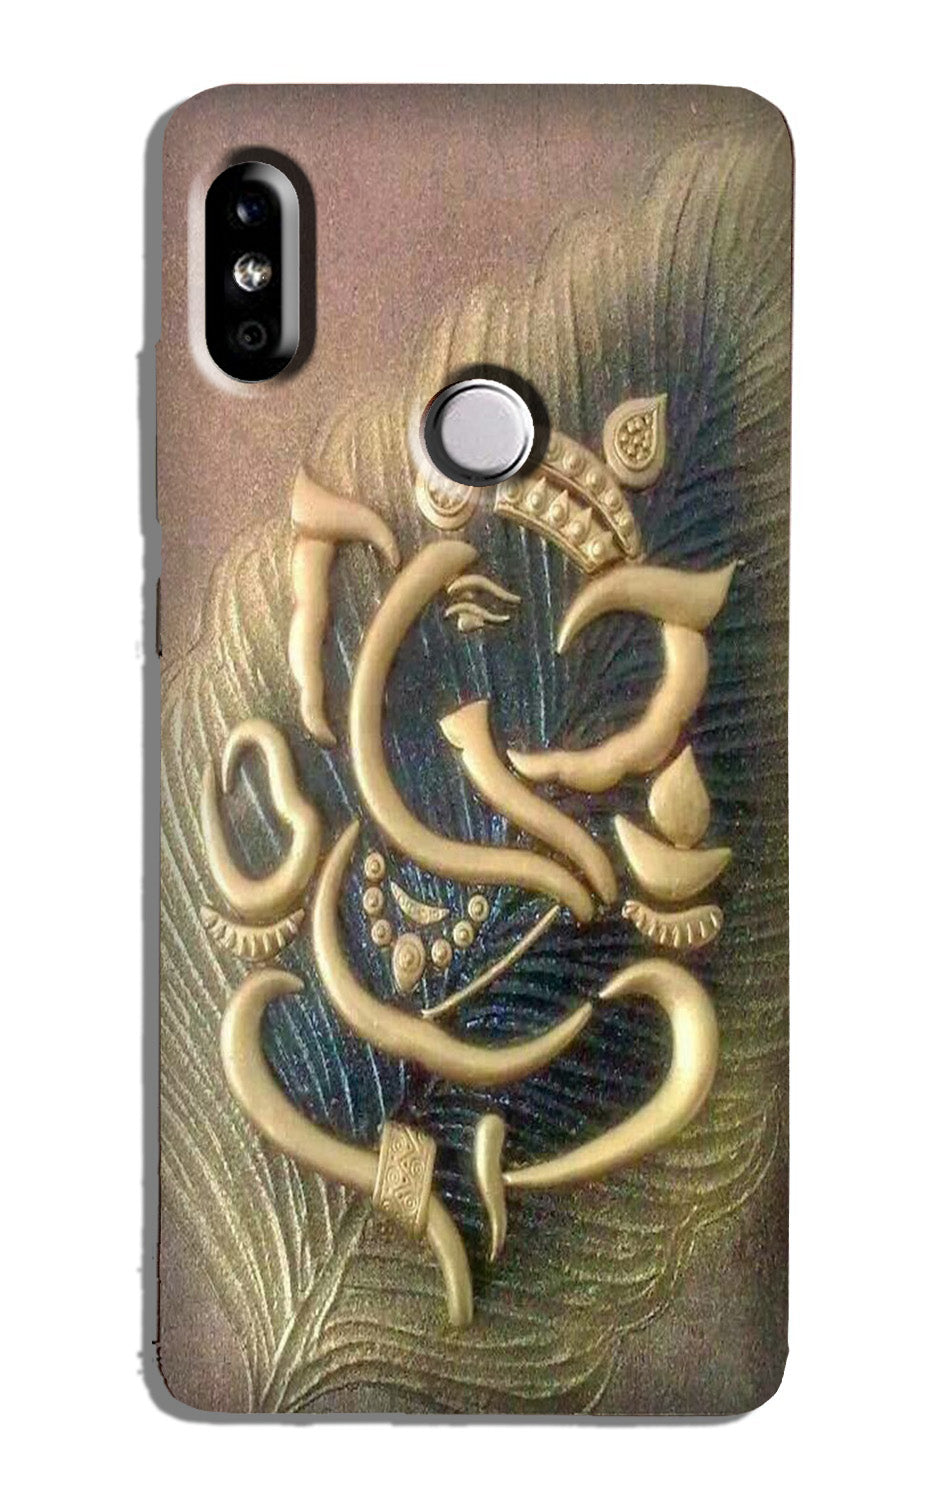 Lord Ganesha Case for Redmi 6 Pro